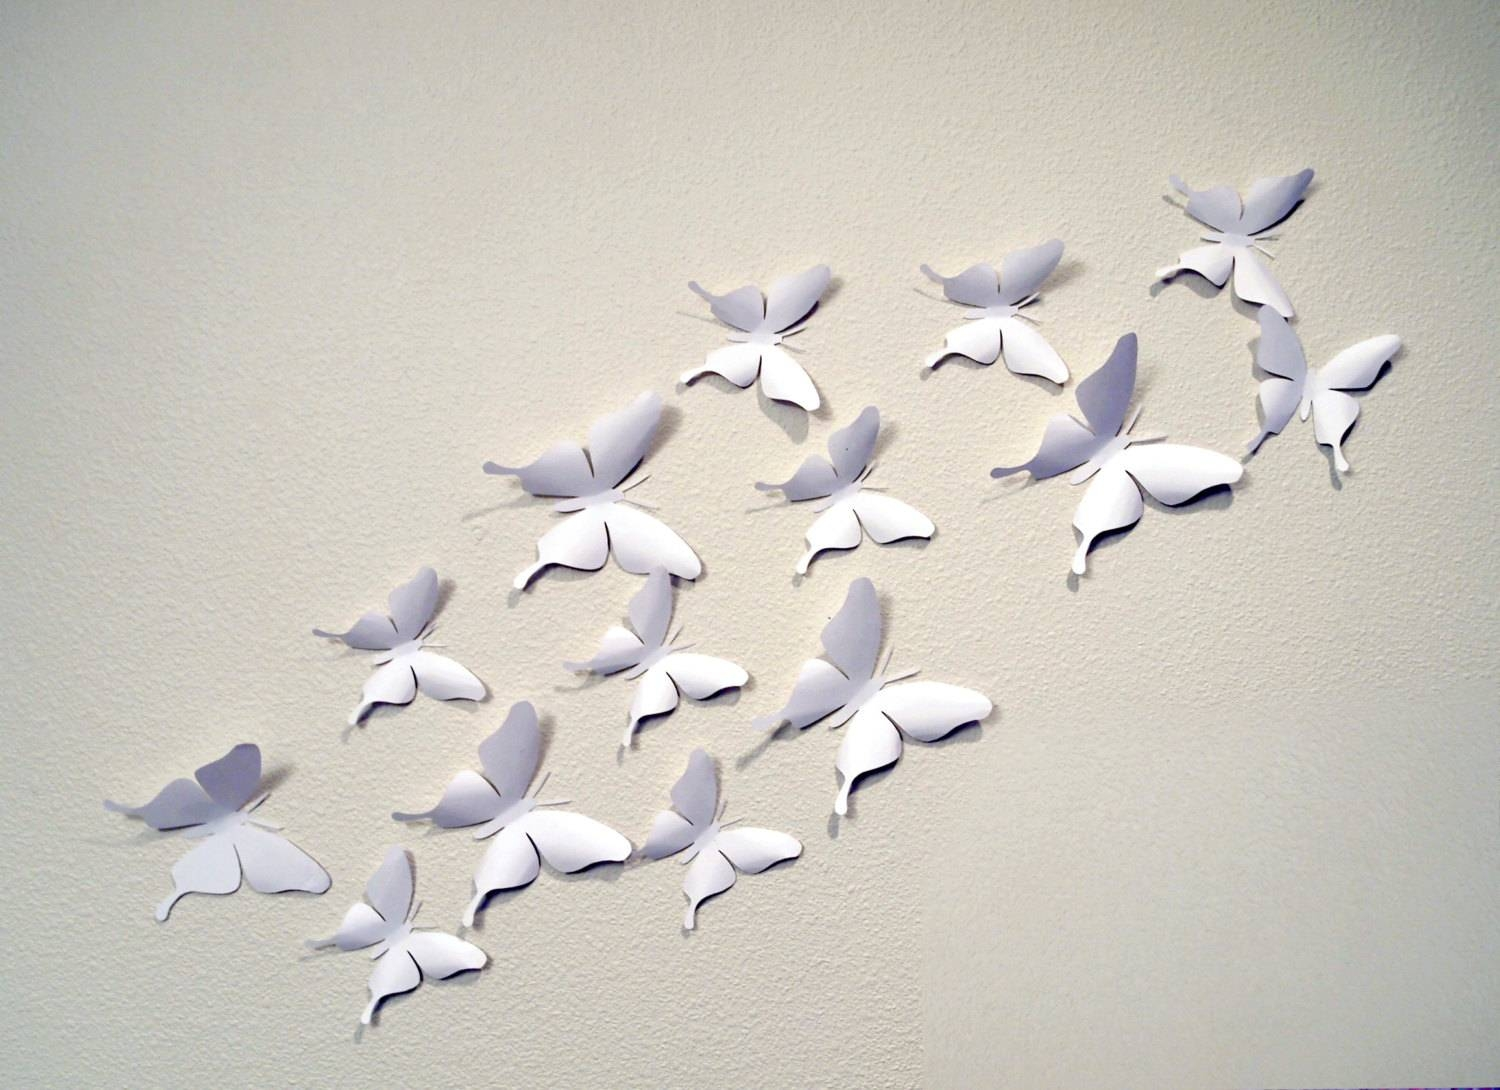 35 White 3D Butterfly Wall Art Throughout Most Recent White 3D Butterfly Wall Art (Gallery 5 of 20)